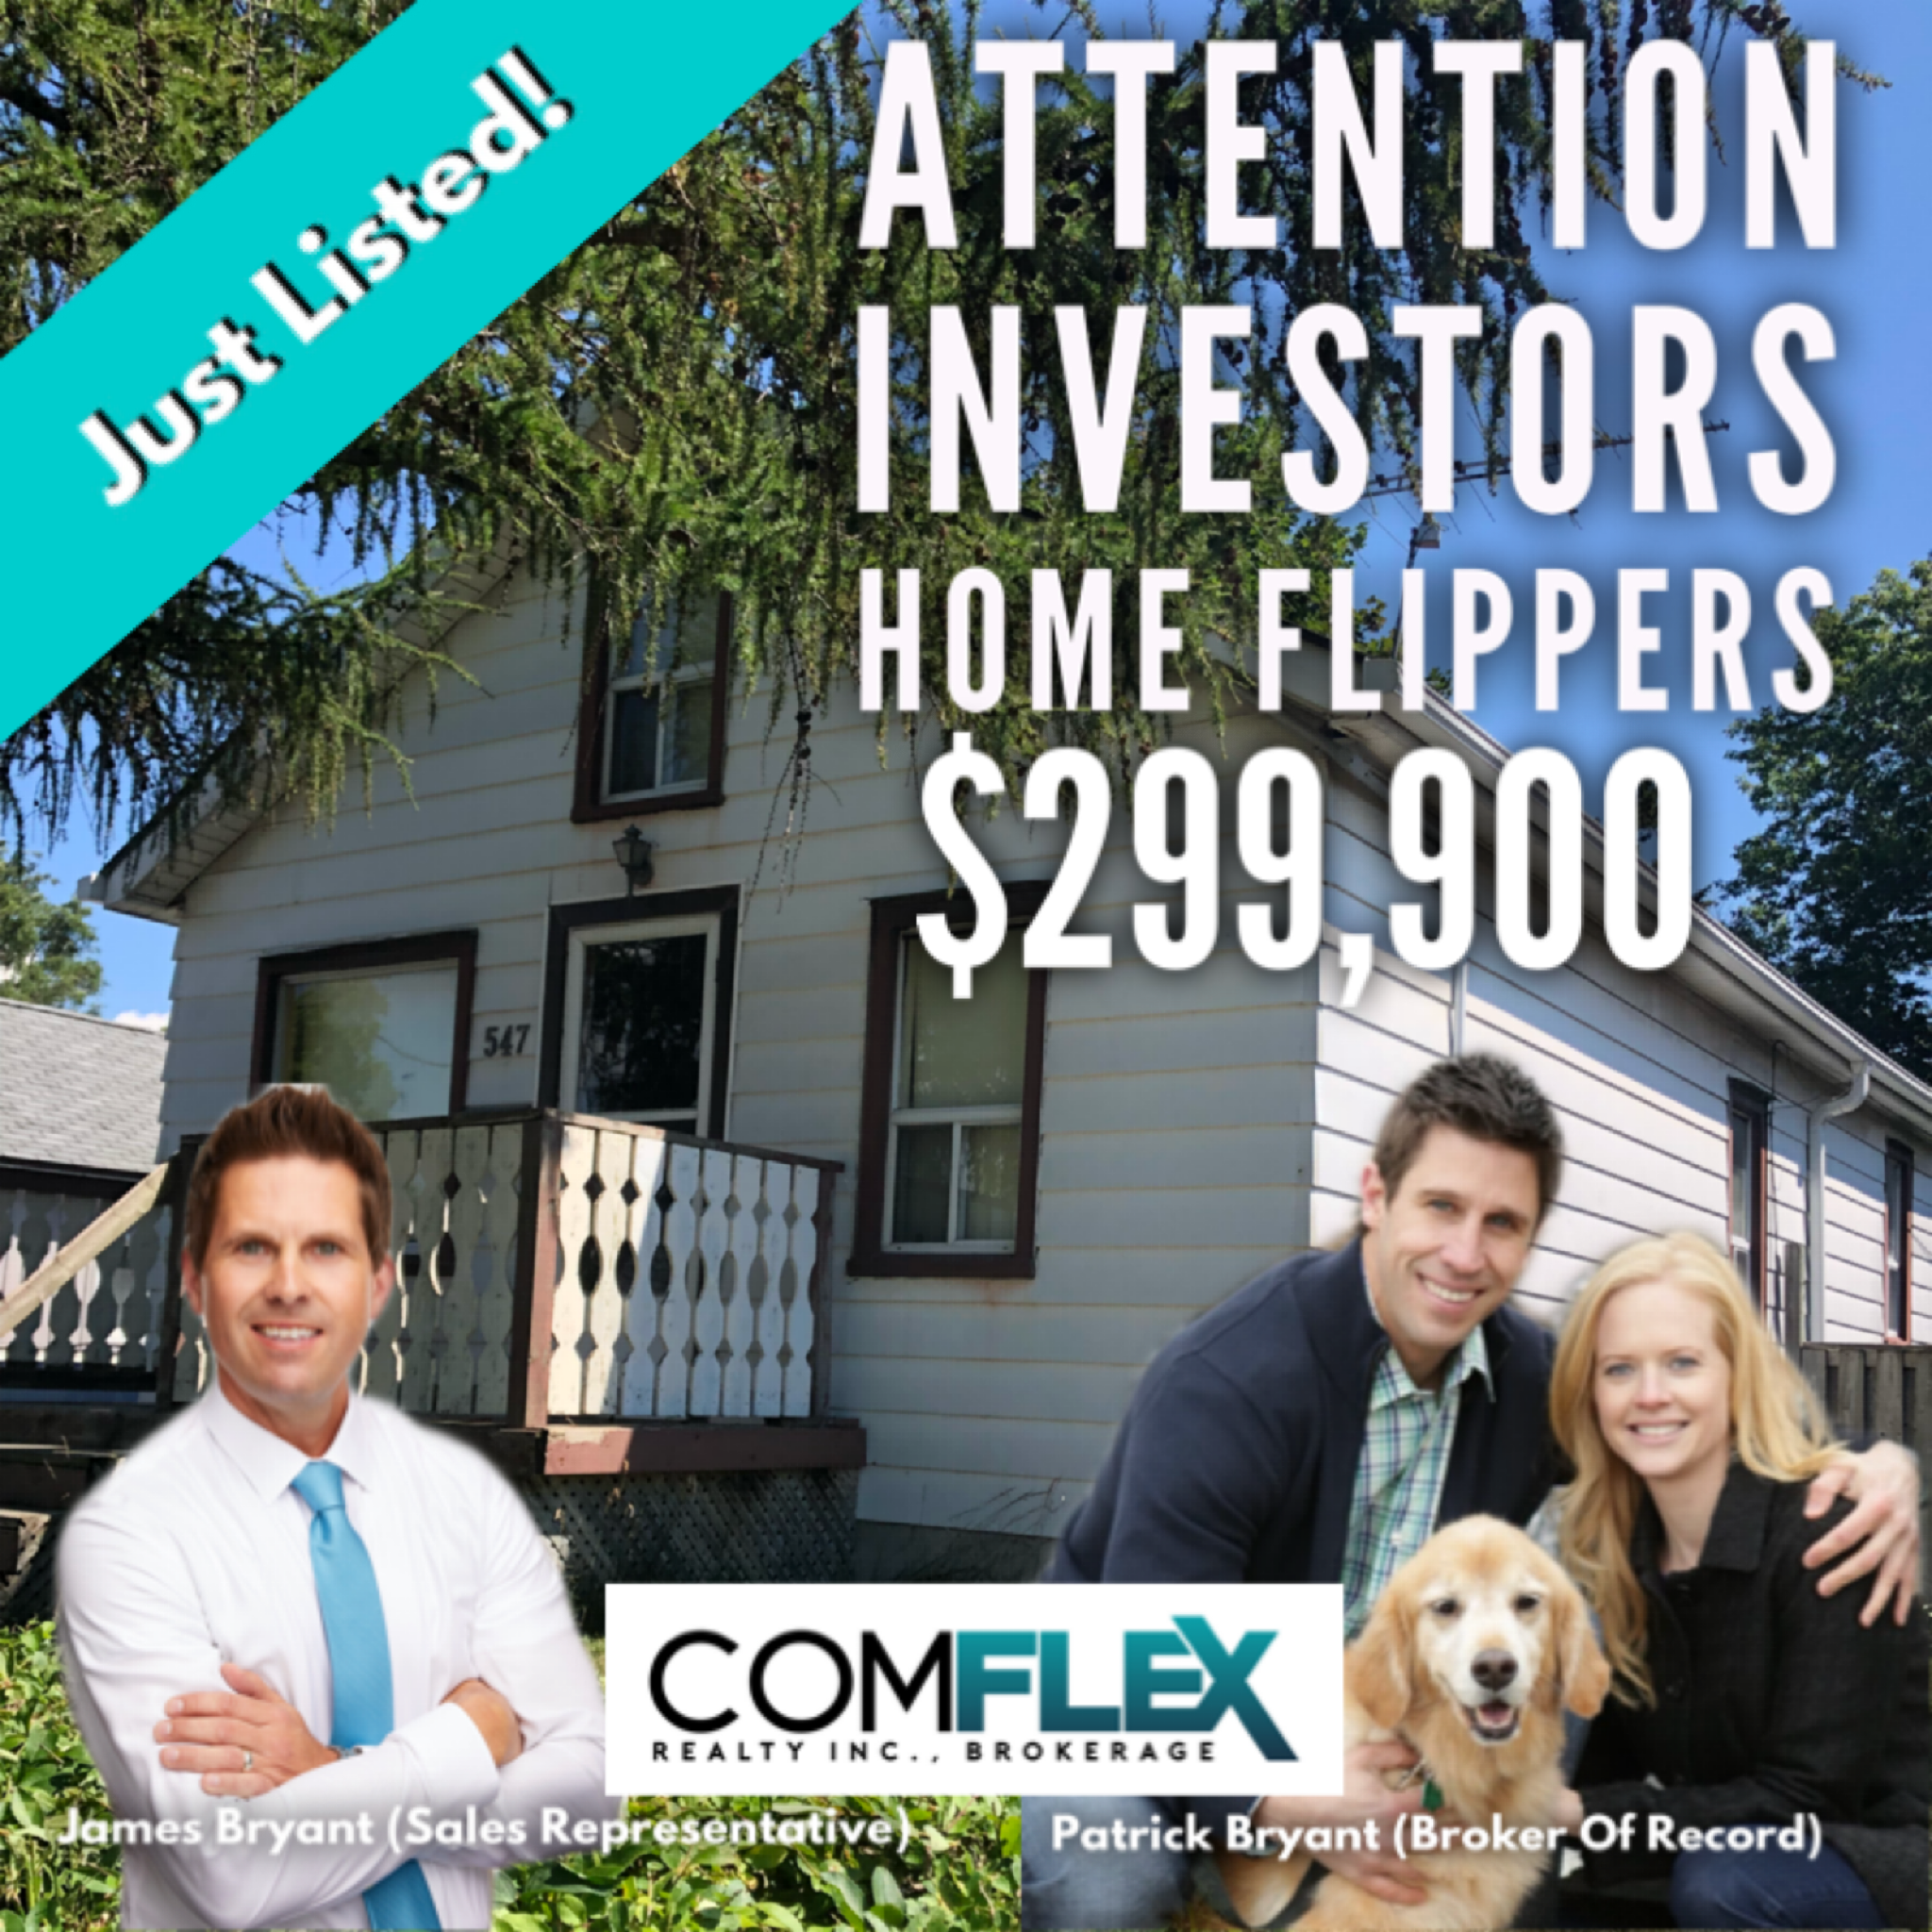 JUST LISTED! ATTENTION HOME FLIPPERS, FIRST TIME BUYERS, INVESTORS! $299,900